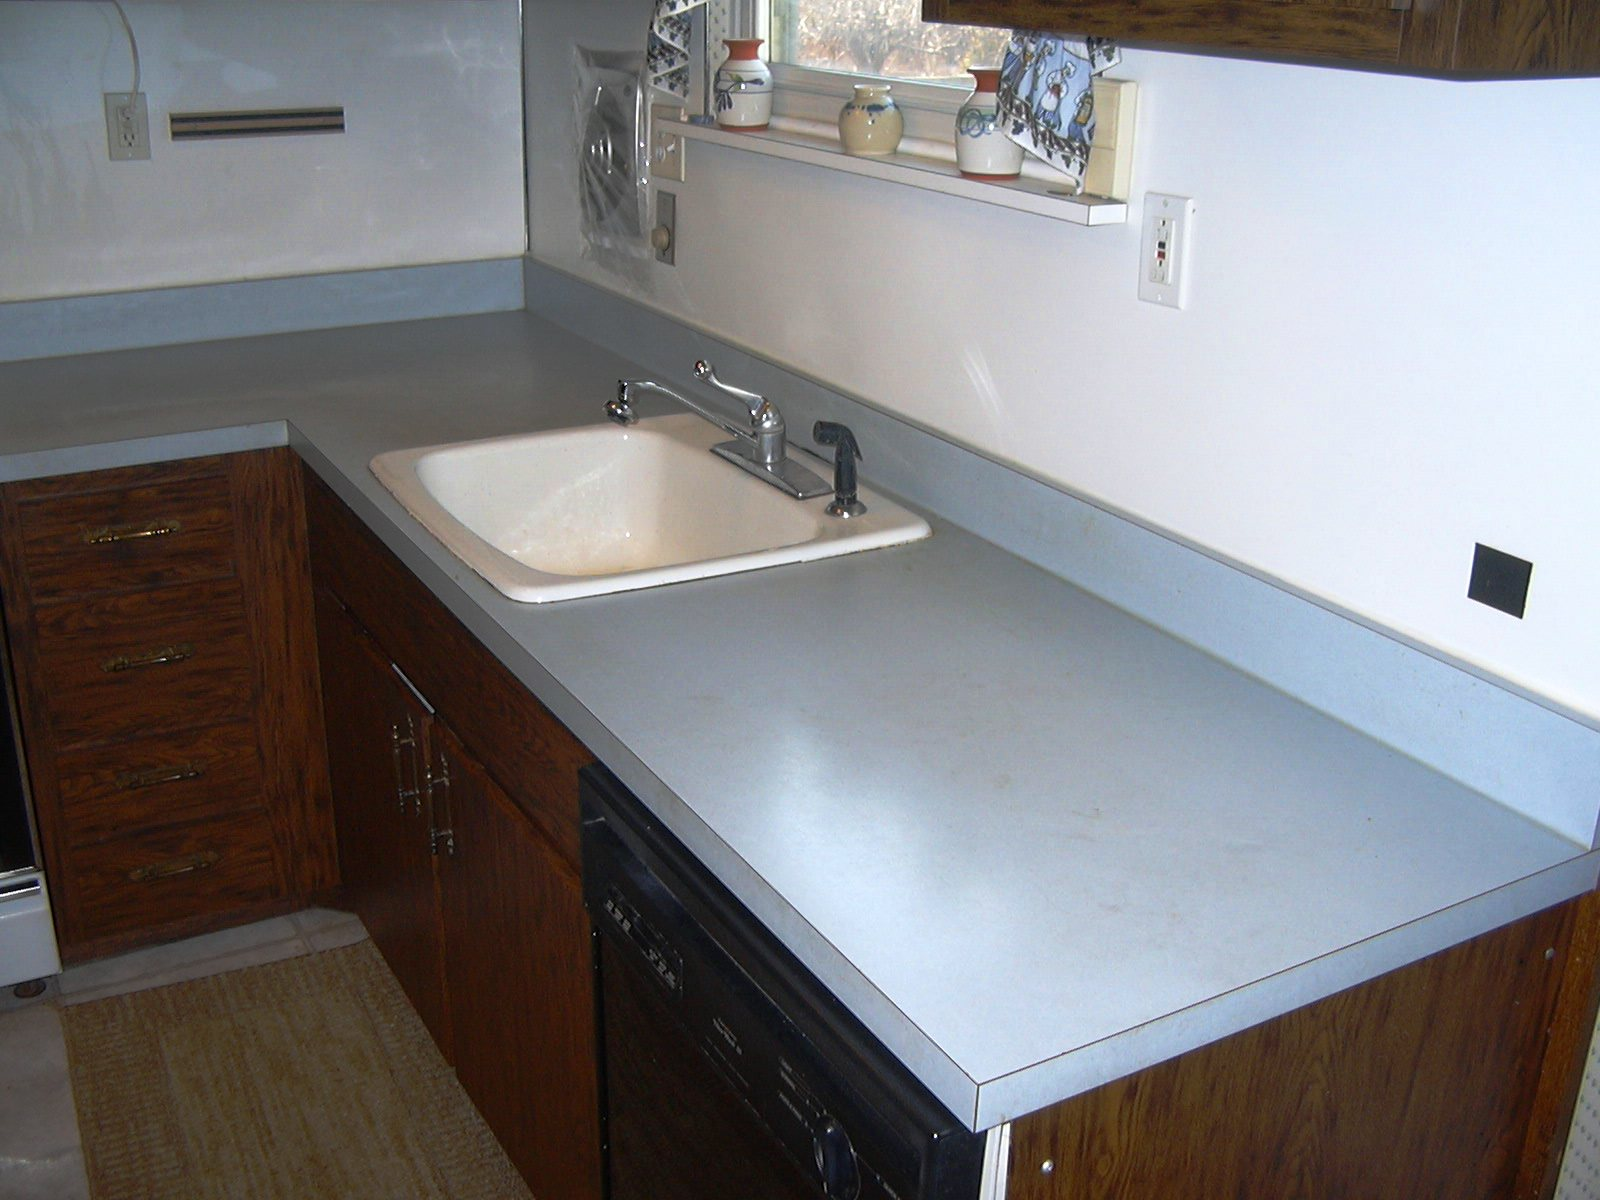 buyers buyer butcher guide countertop kitchen diy s block tile tops info countertops